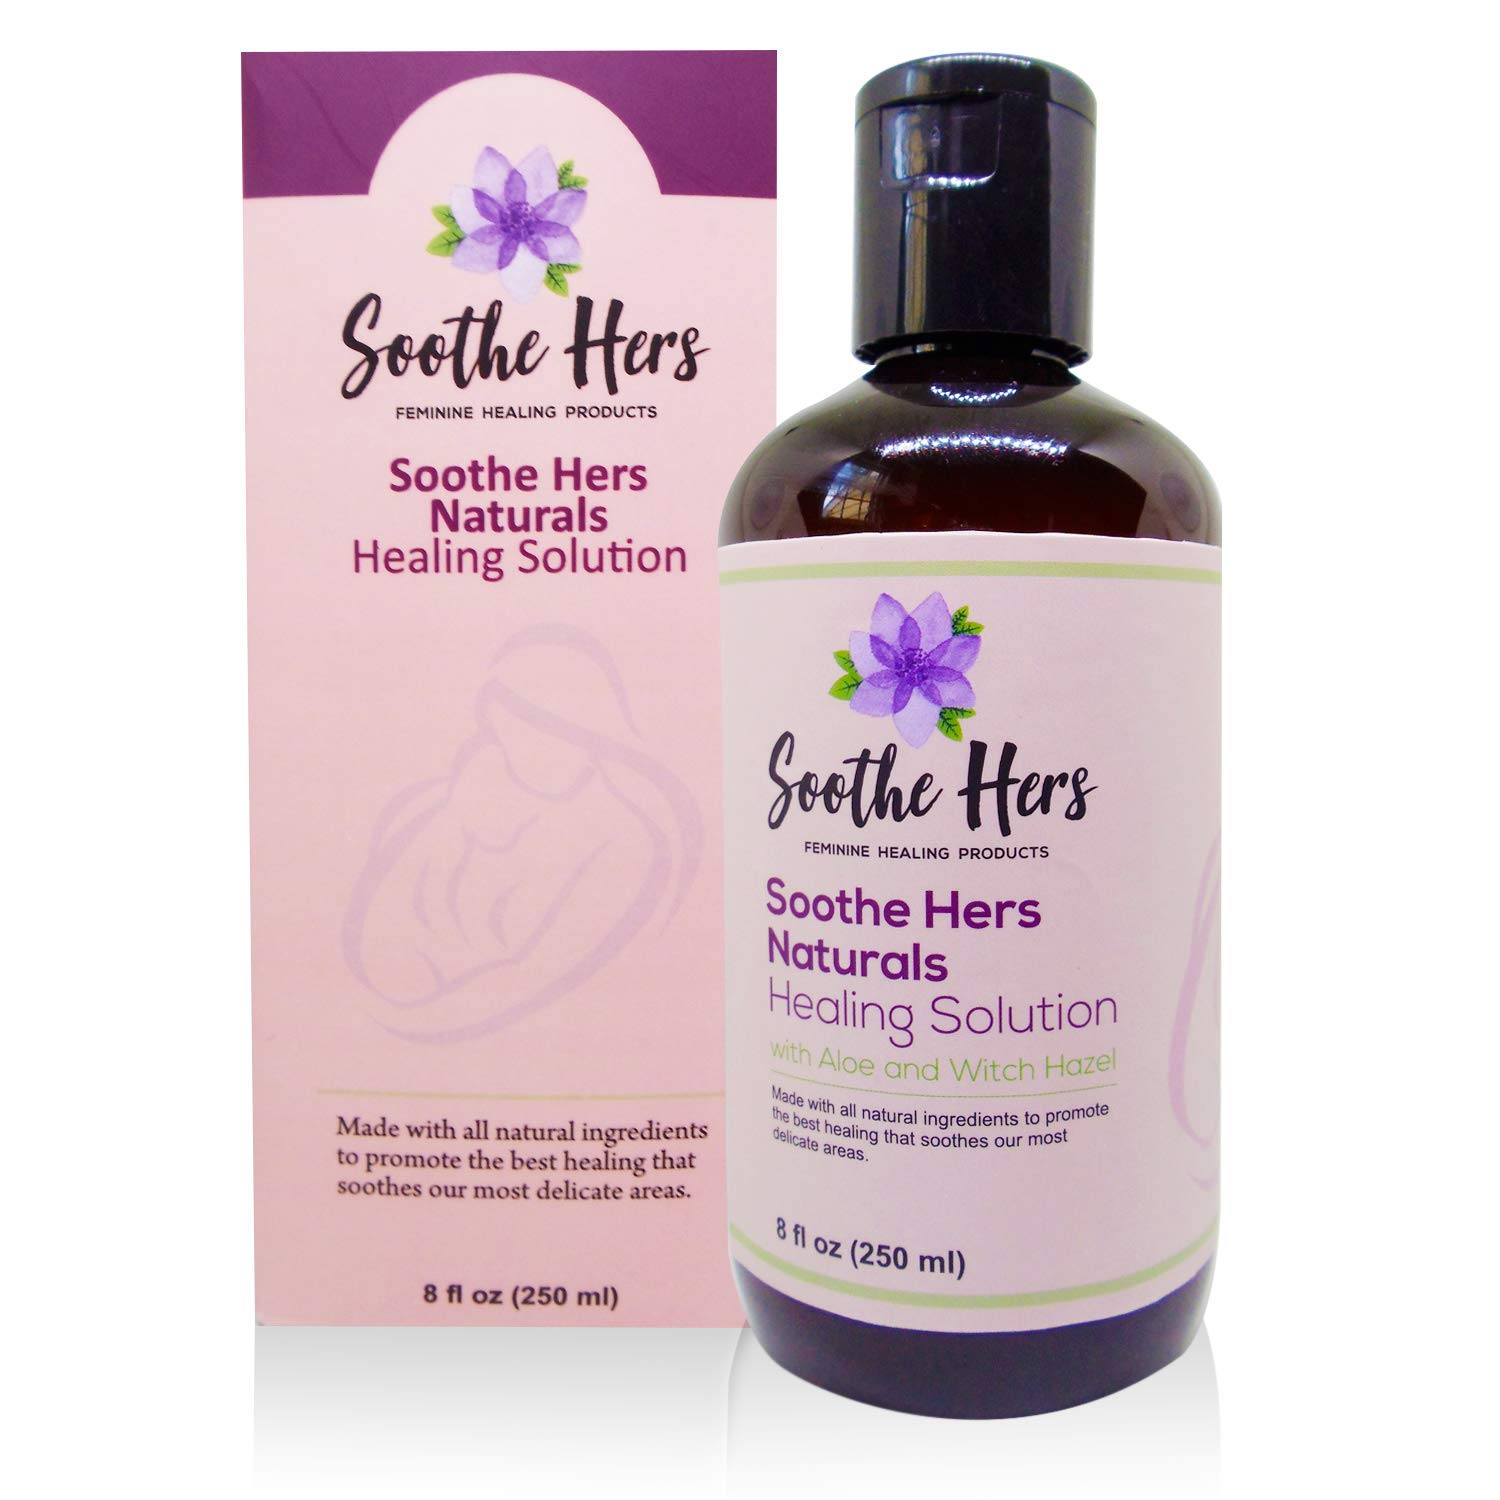 Soothe Hers Postpartum Healing Solution   Natural Perineal Recovery   Postpartum Care for Moms   Safe for Pregnancy   Labor & Delivery Bag   Birth Prep   Baby Shower Gift   8 oz